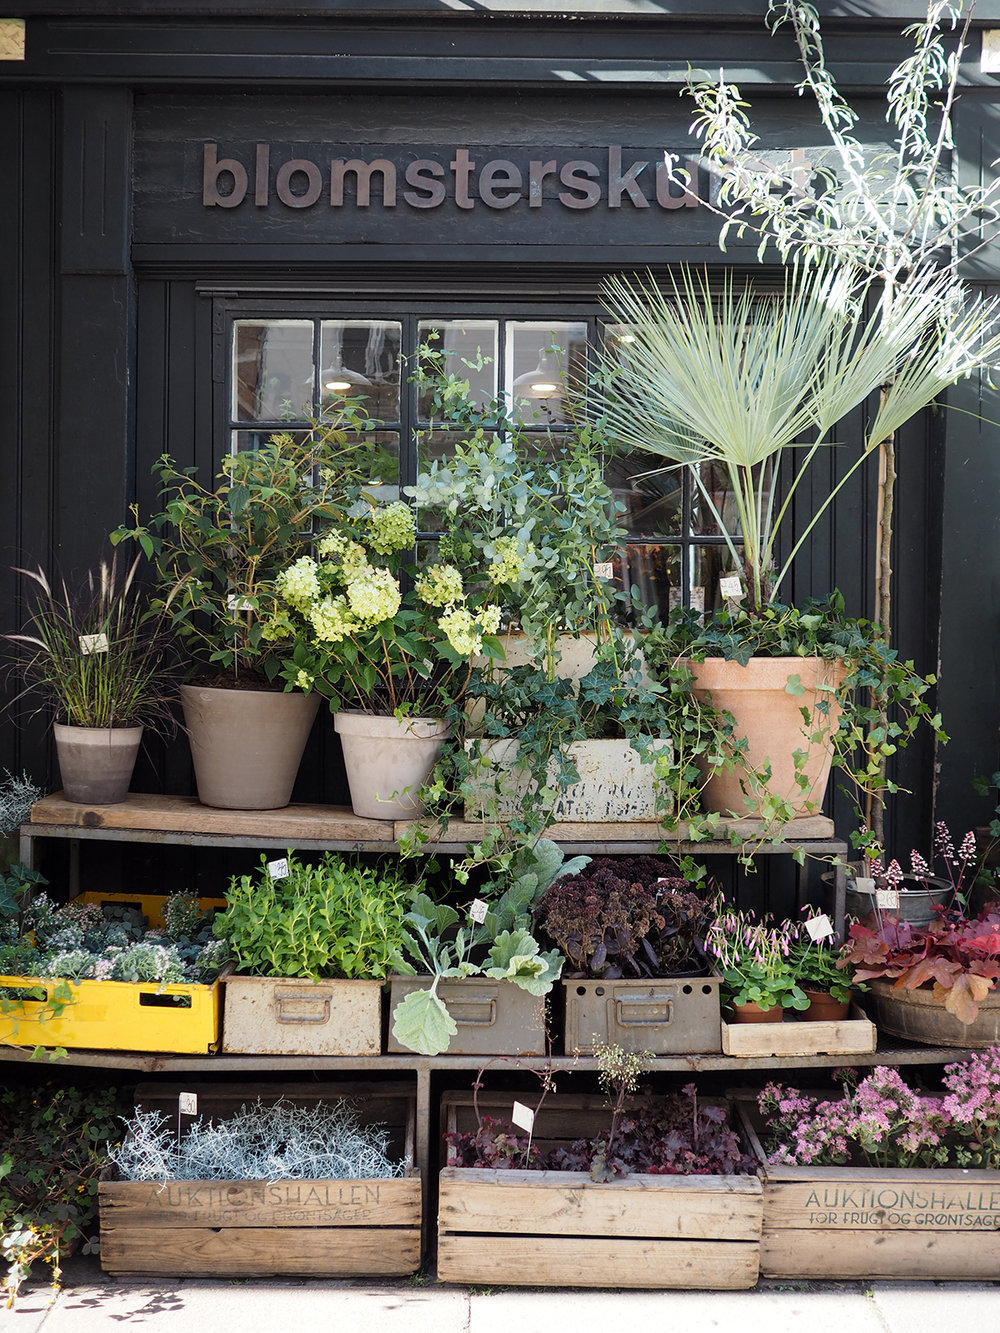 Copenhagen flower shop